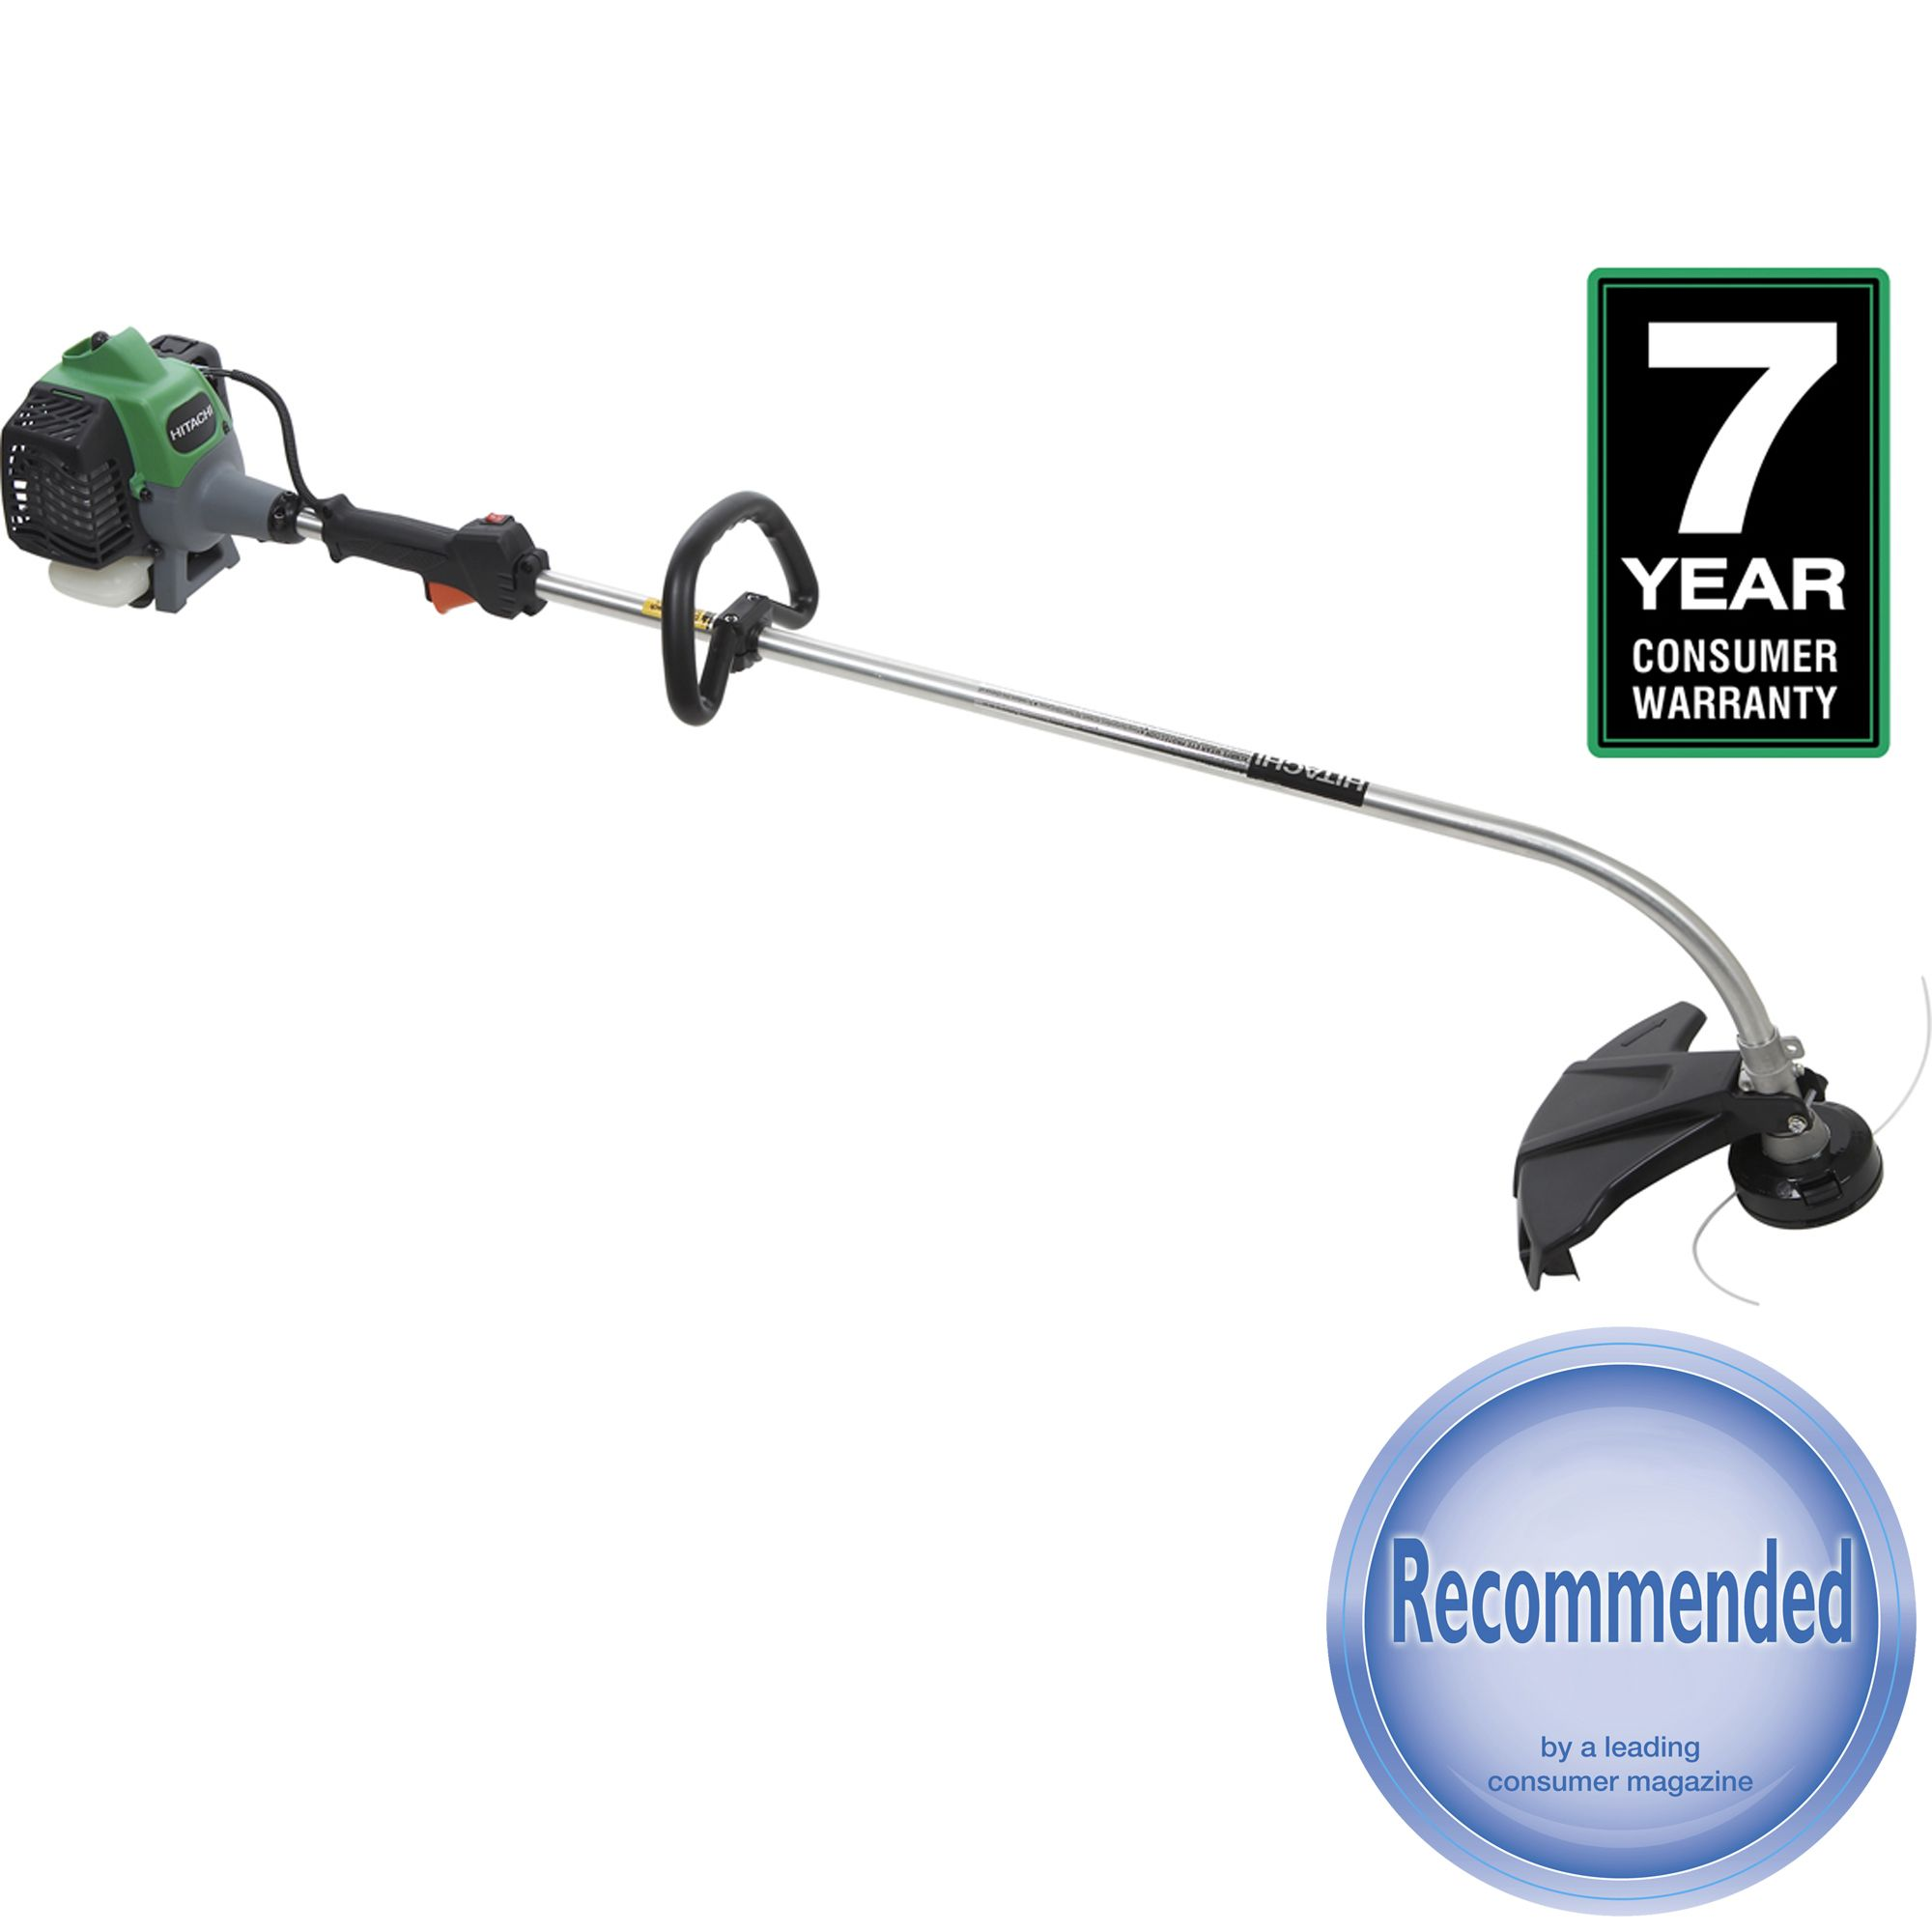 21.1 cc Curved Shaft Gas Line Trimmer                                                                                            at mygofer.com